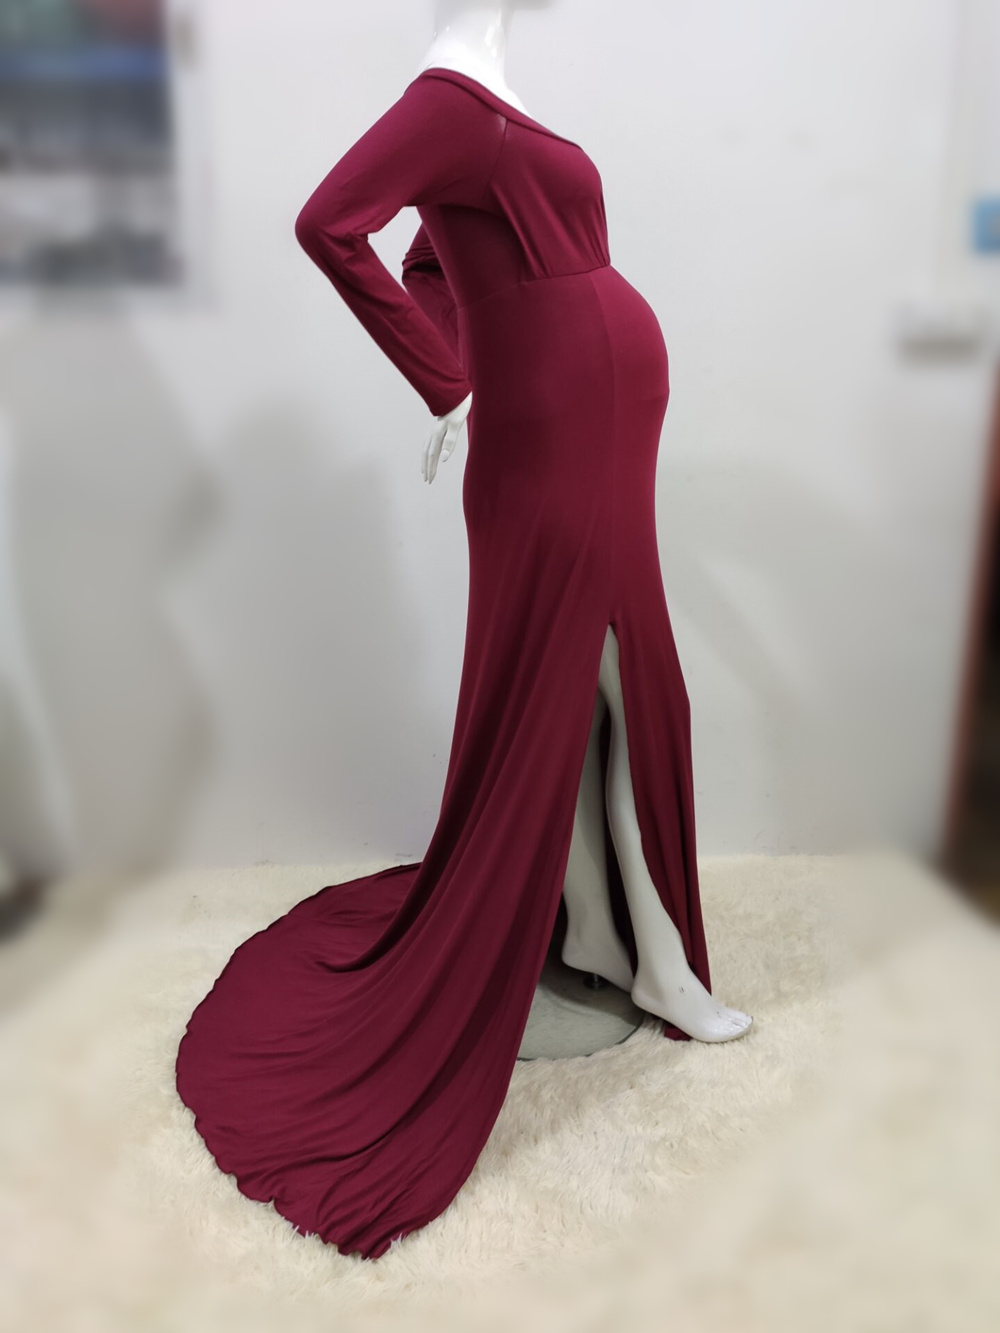 Sexy Shoulderless Maternity Dresses For Photo Shoot Maxi Gown Split Side Women Pregnant Photography Props Long Pregnancy Dress (22)